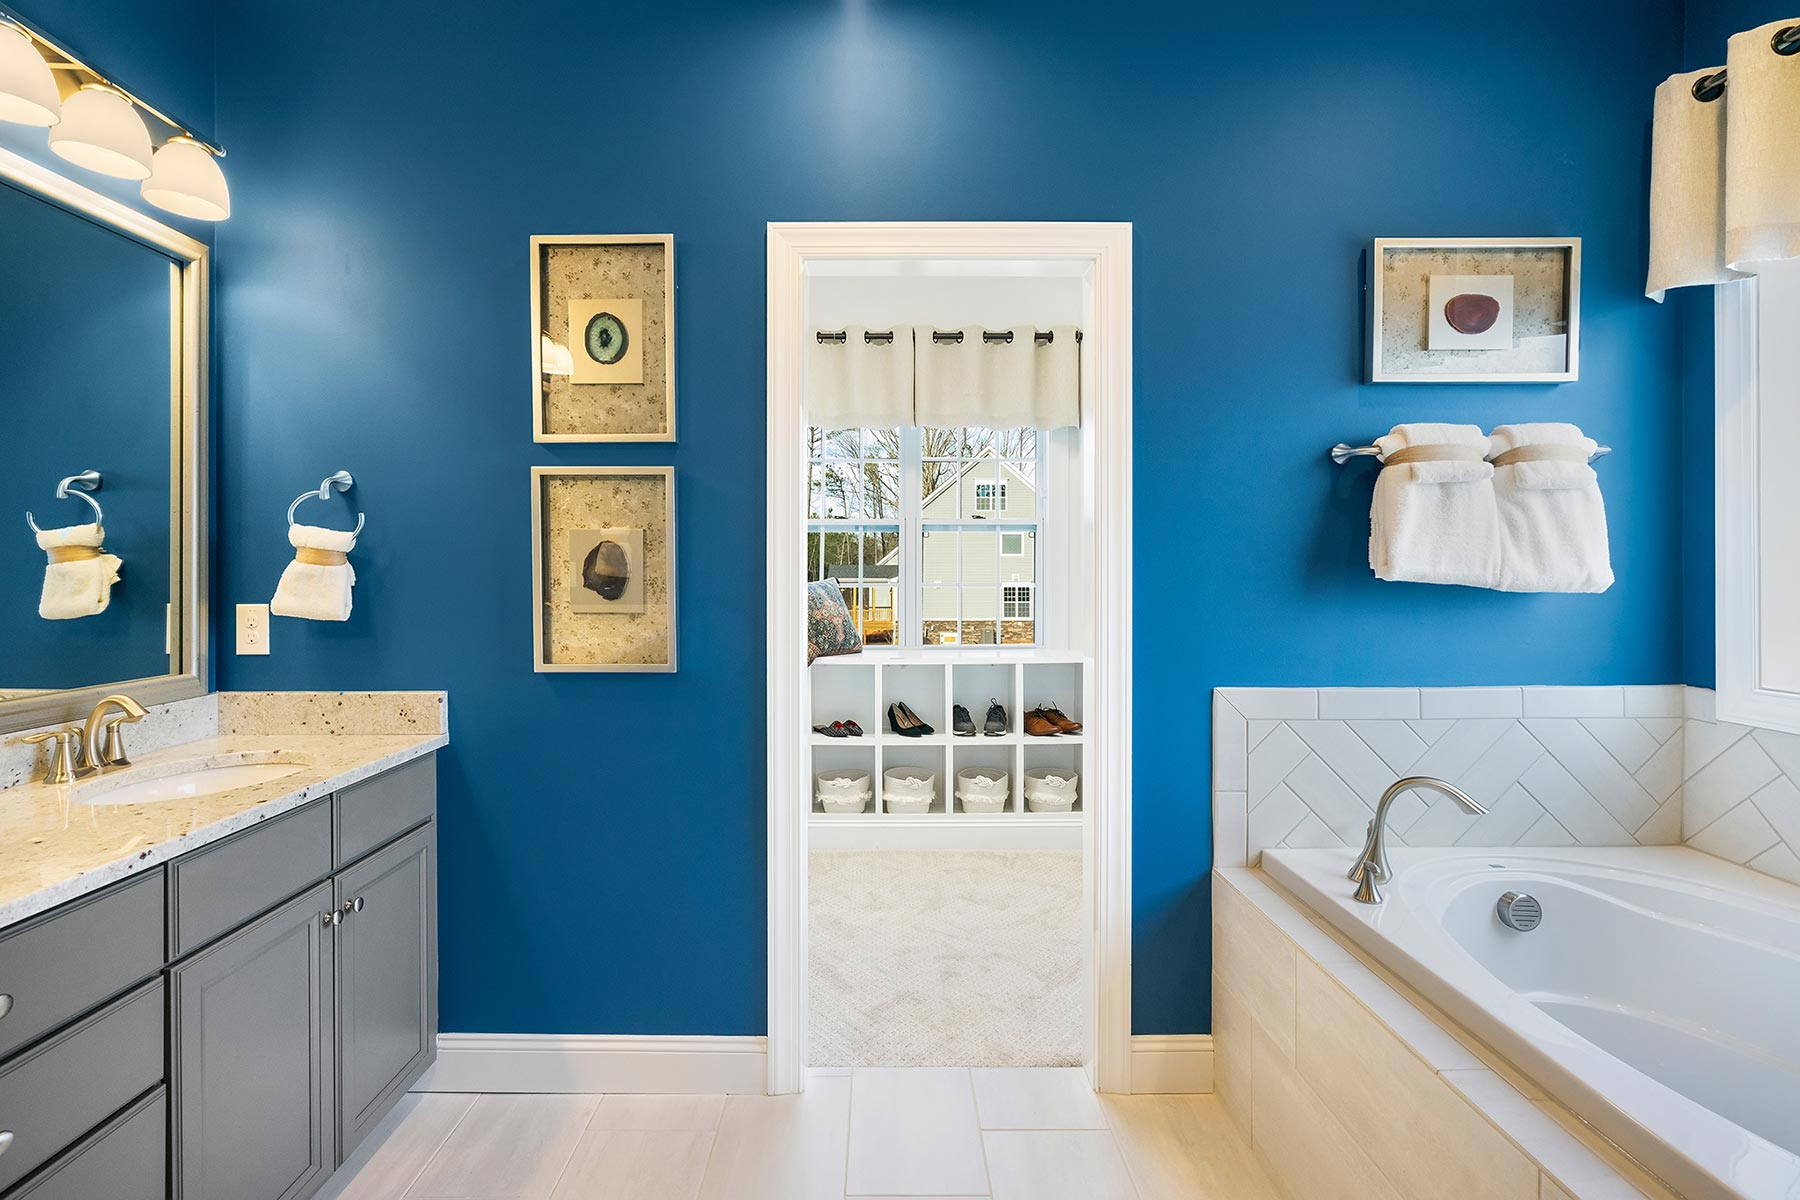 Edenton Plan Bath at Ballentine Place in Holly Springs North Carolina by Mattamy Homes